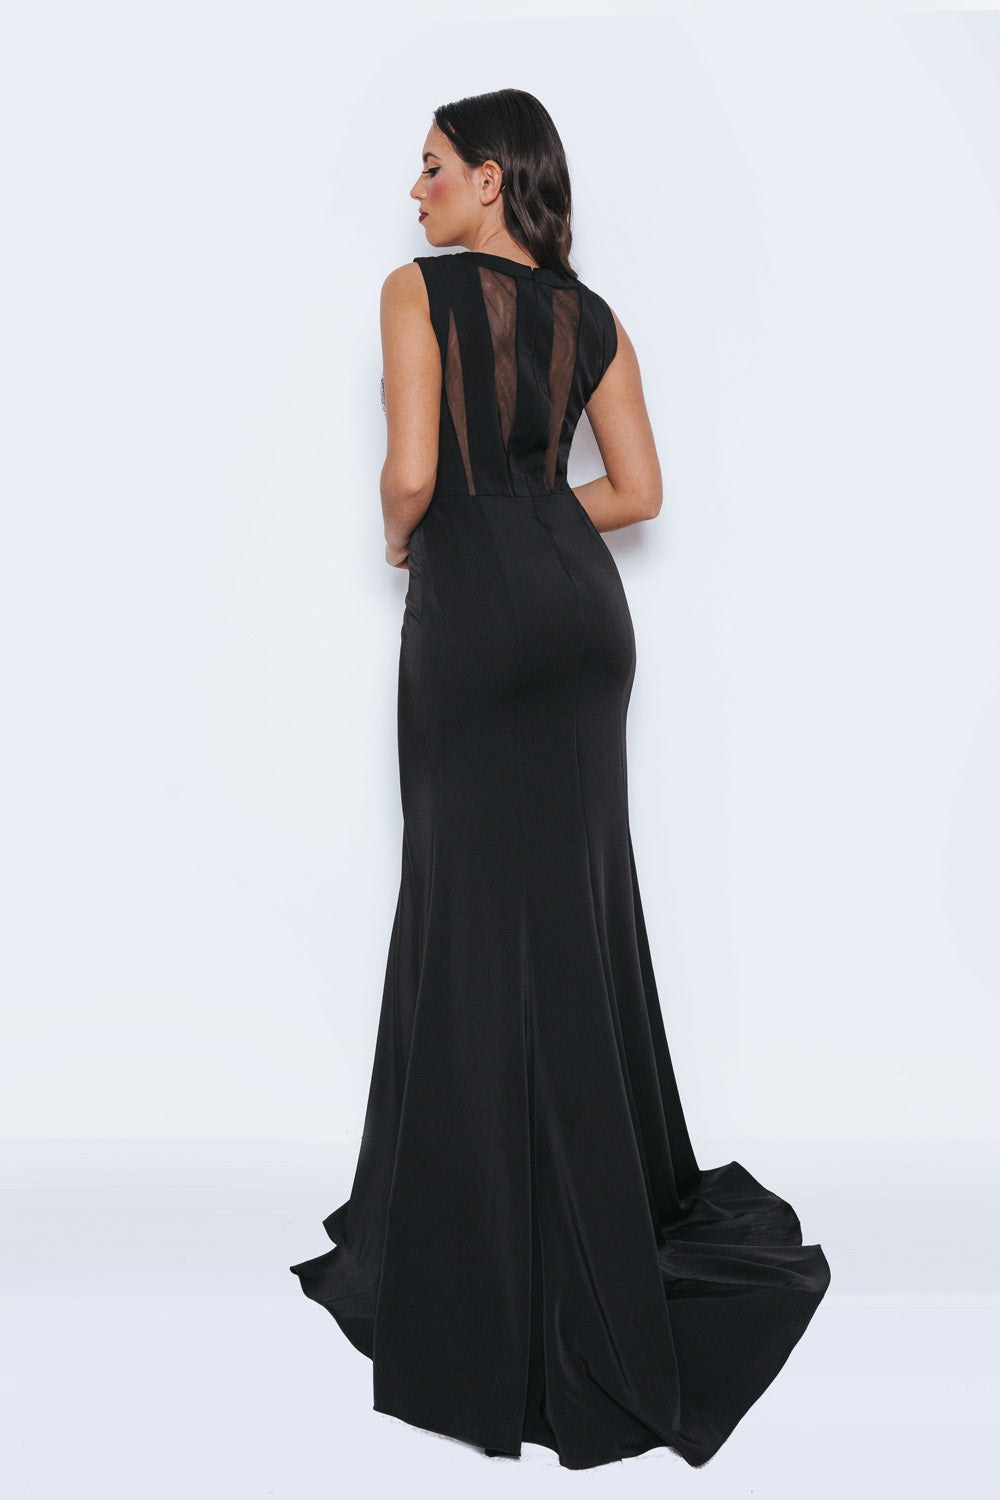 Ghasna Black Long Evening Gown - Gissings Boutique